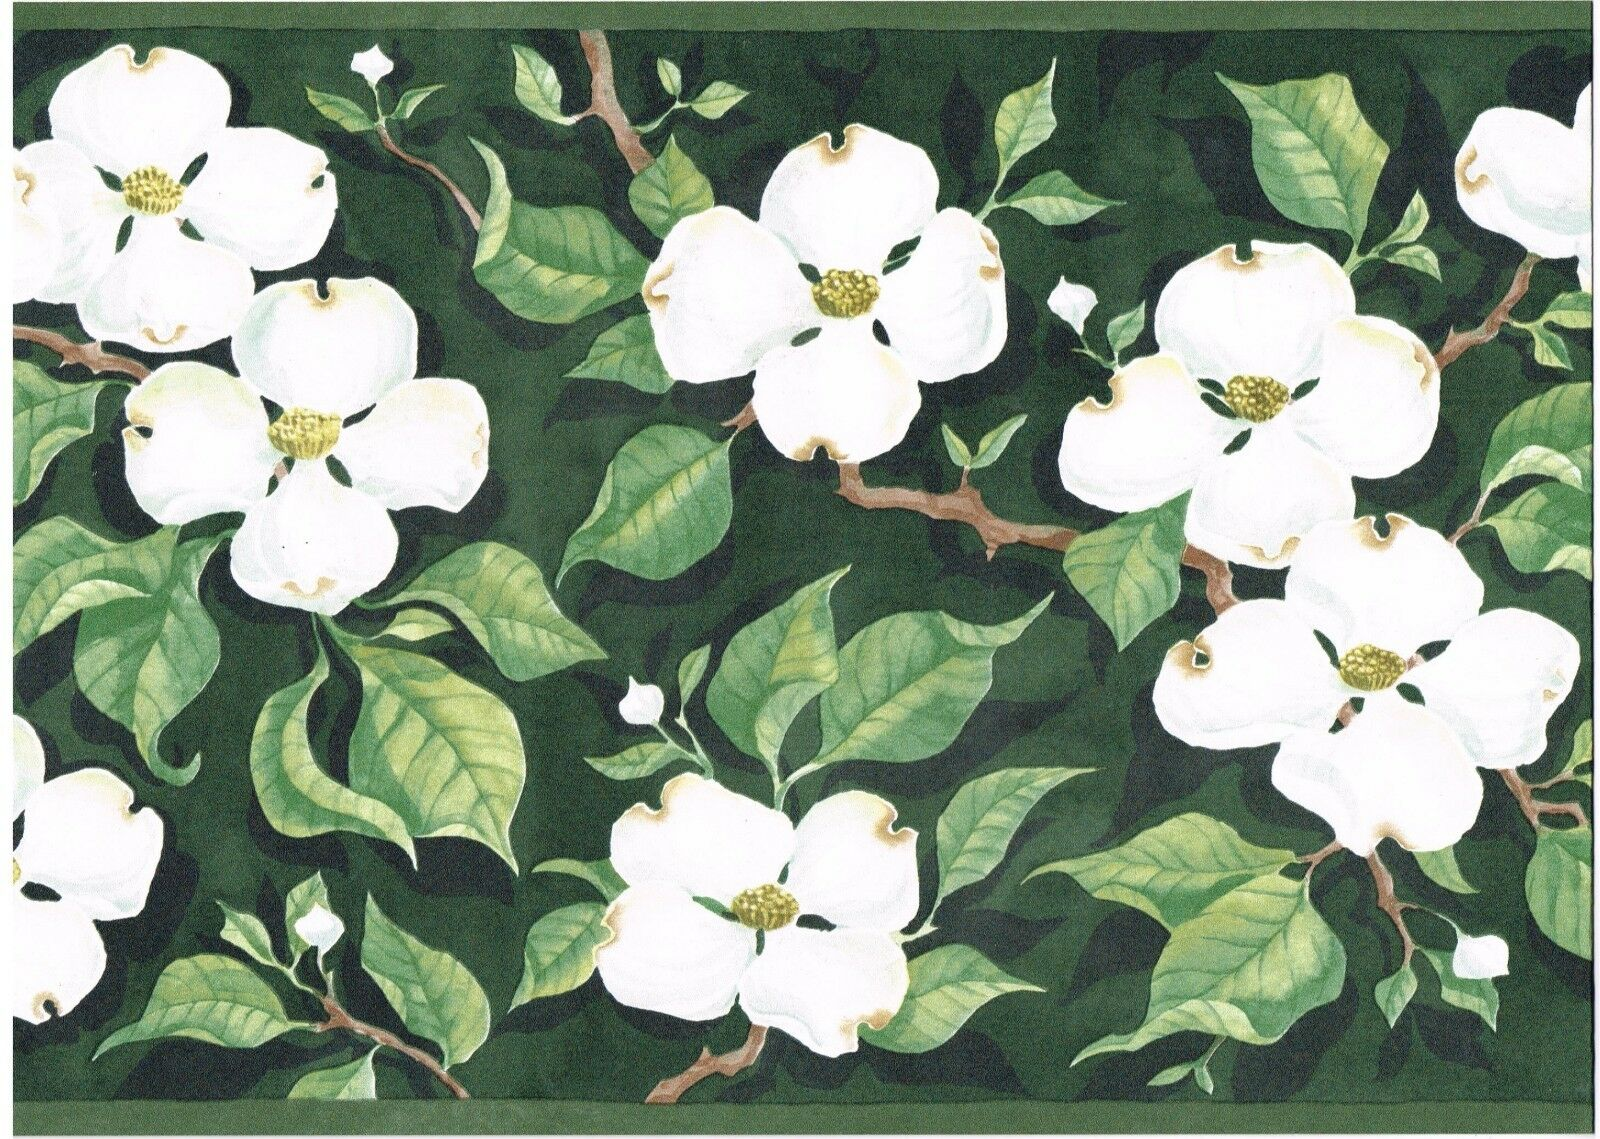 White Dogwood Leaves Branches Green Background Trimwallpaper